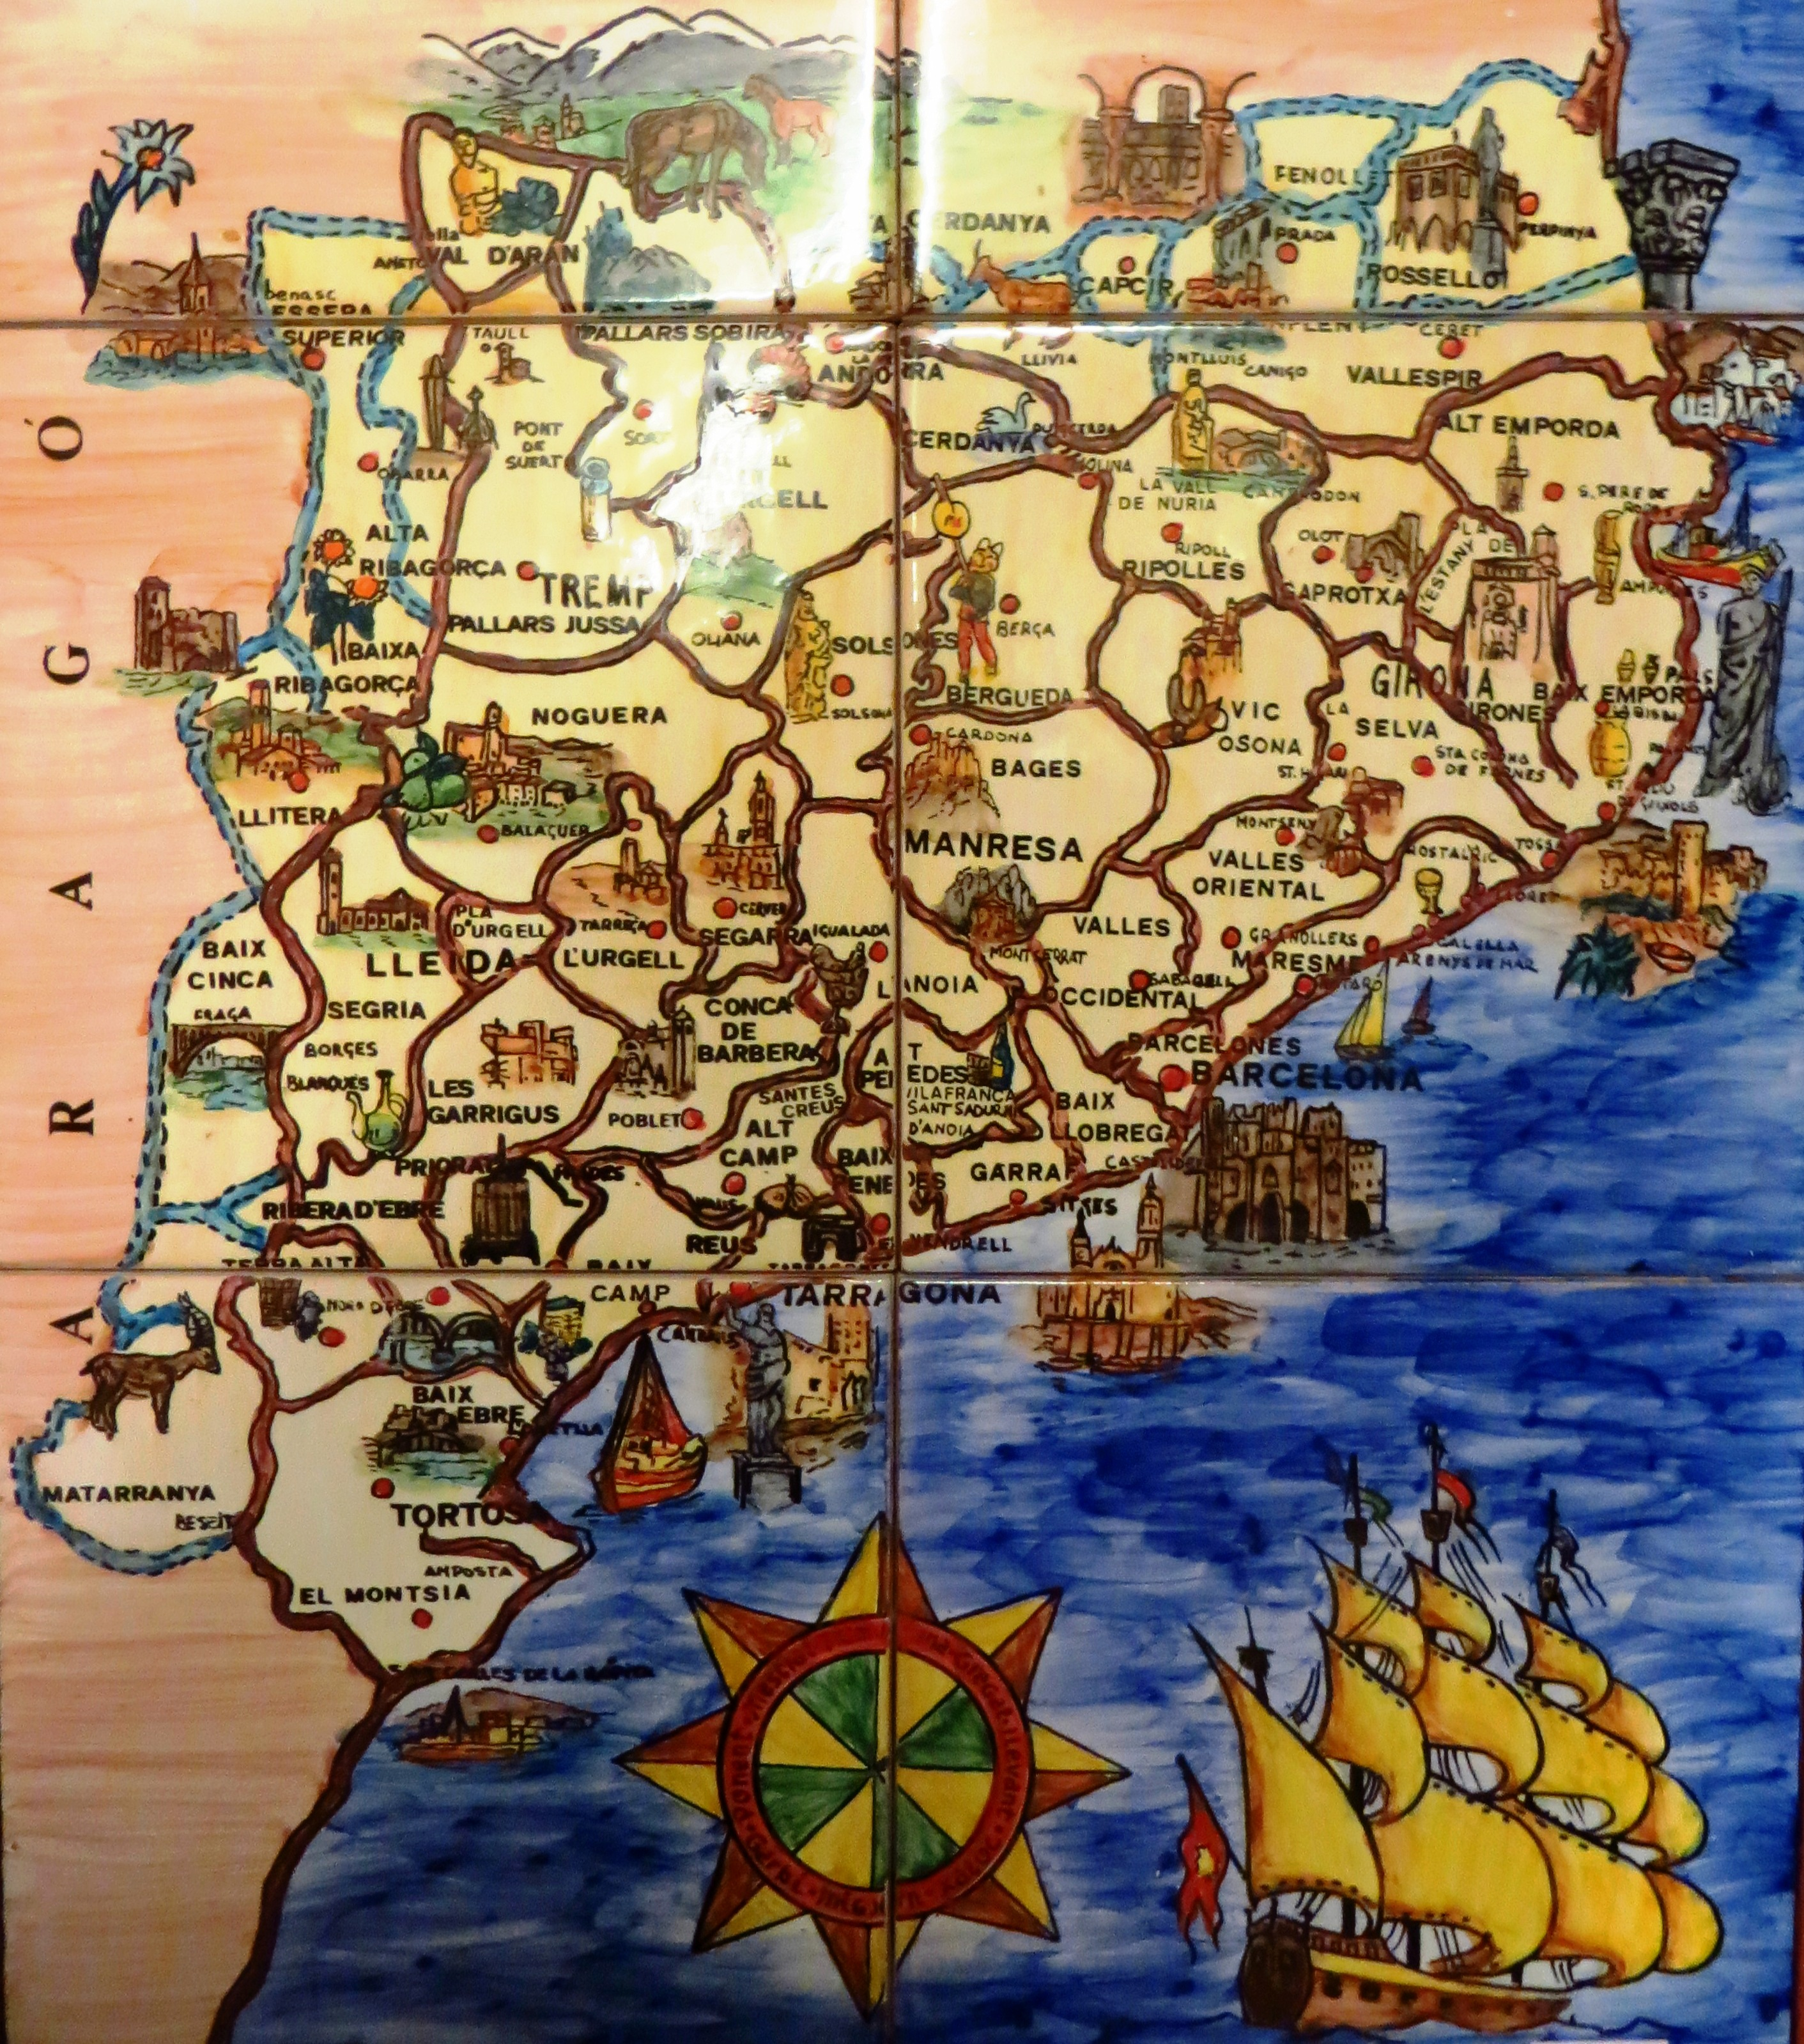 Catalonia The Costa Brava and the Bay of Roses Have Bag Will Travel